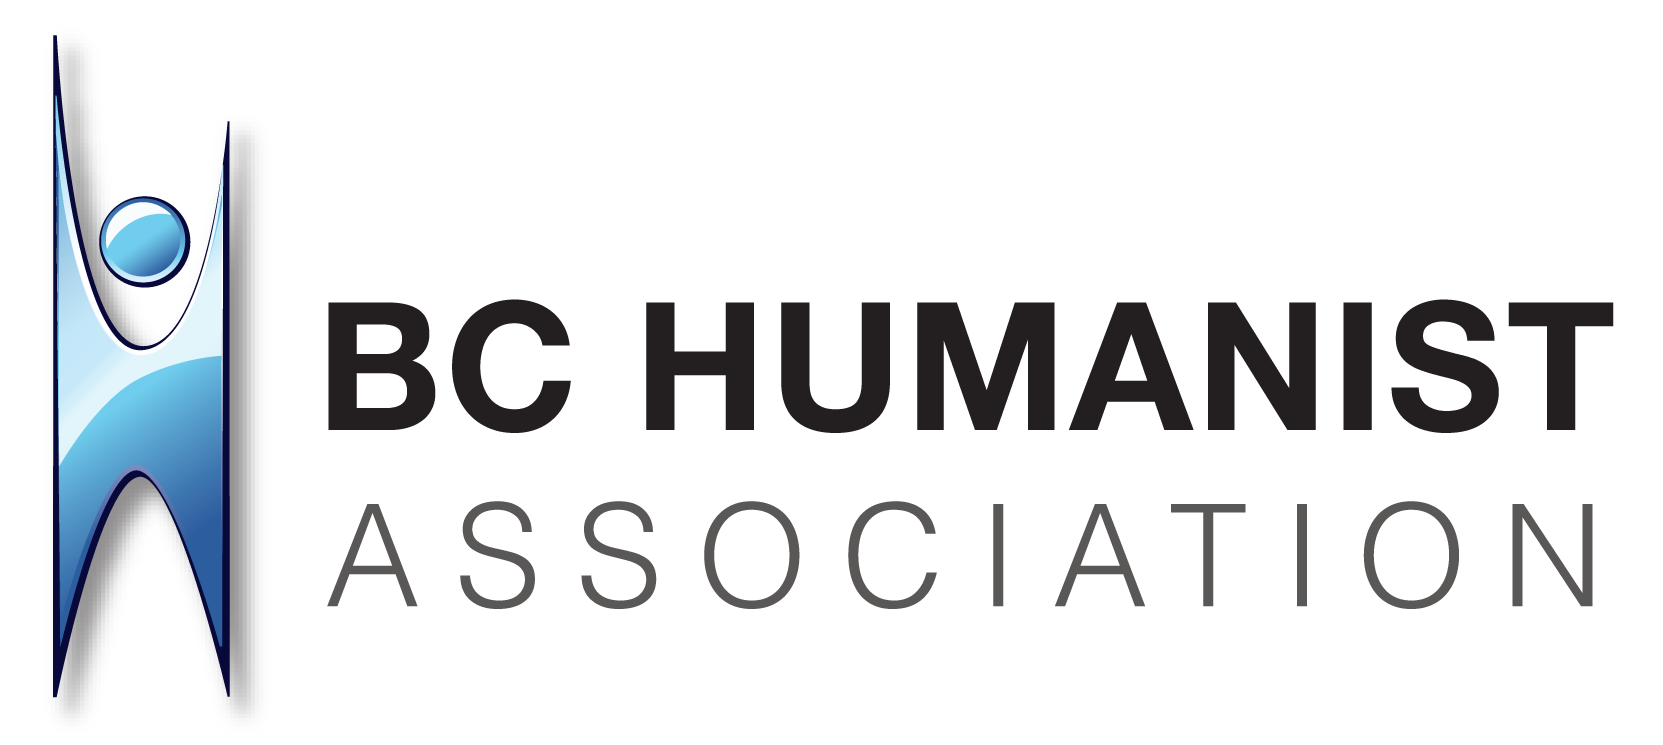 BC Humanist Association logo